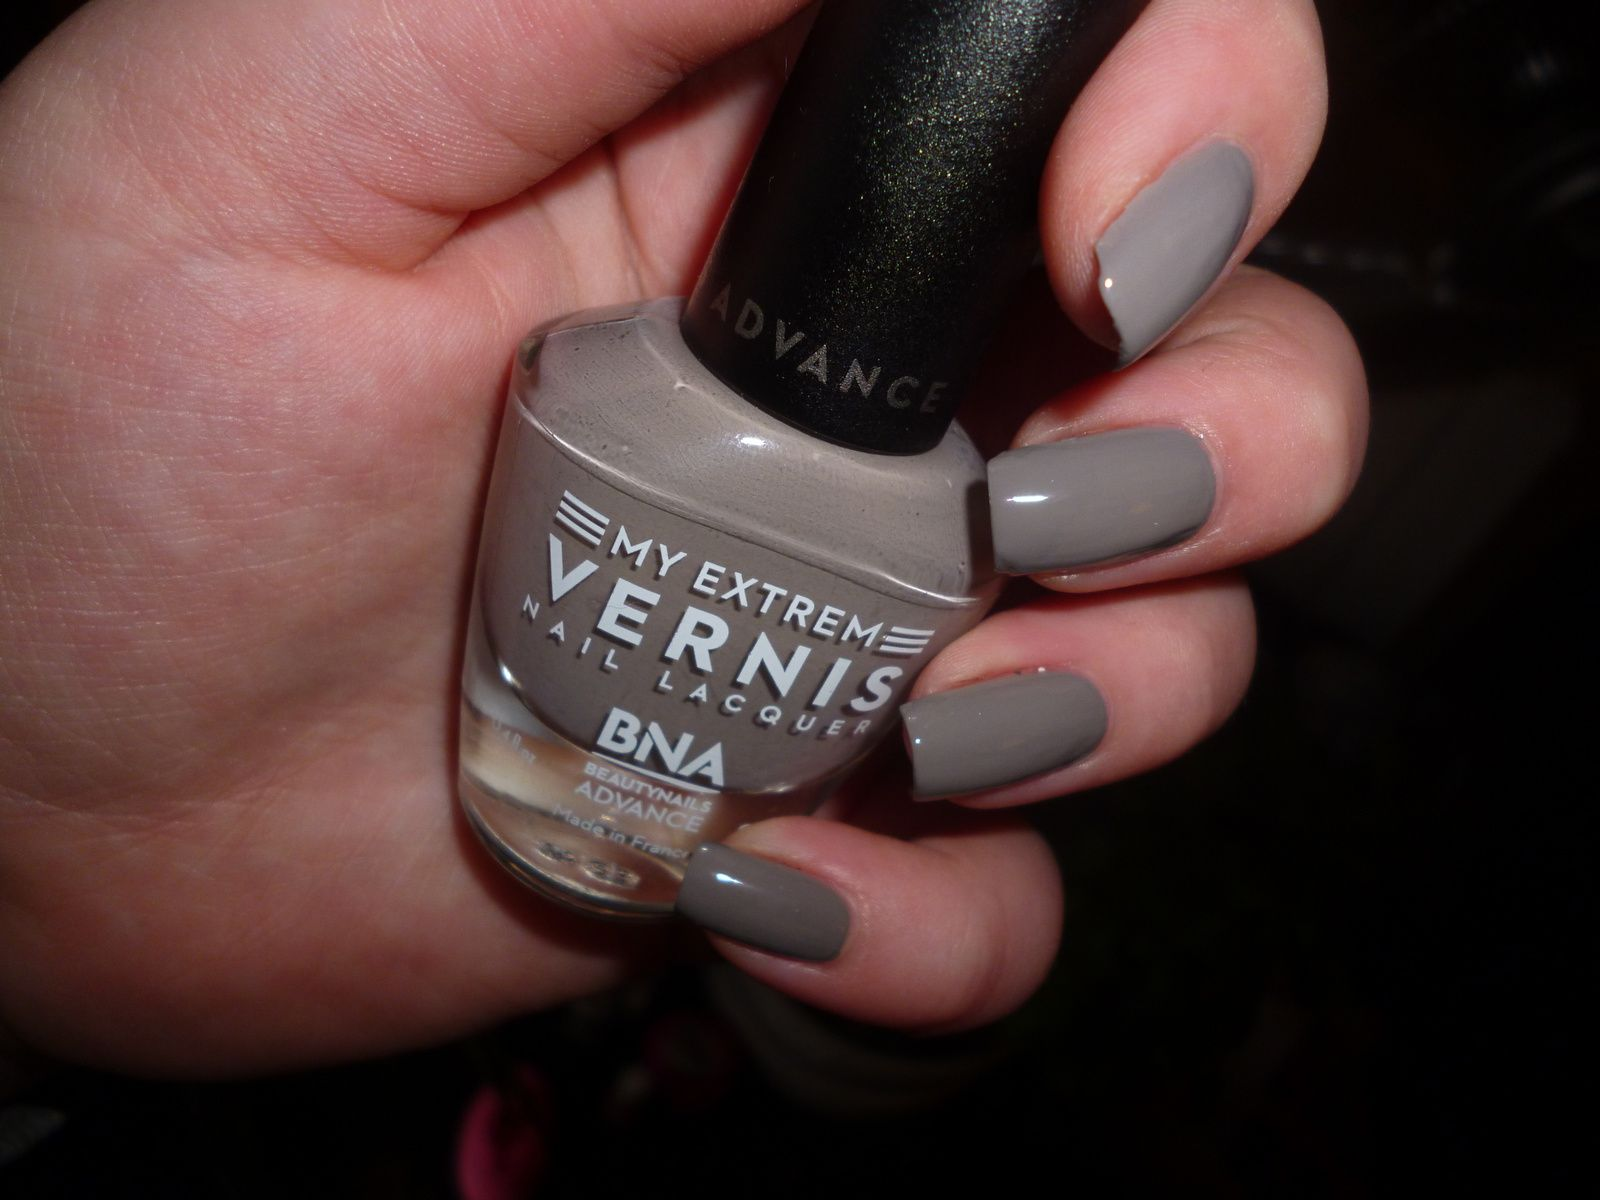 MY EXTREM VERNIS TRENCH - Beautynails